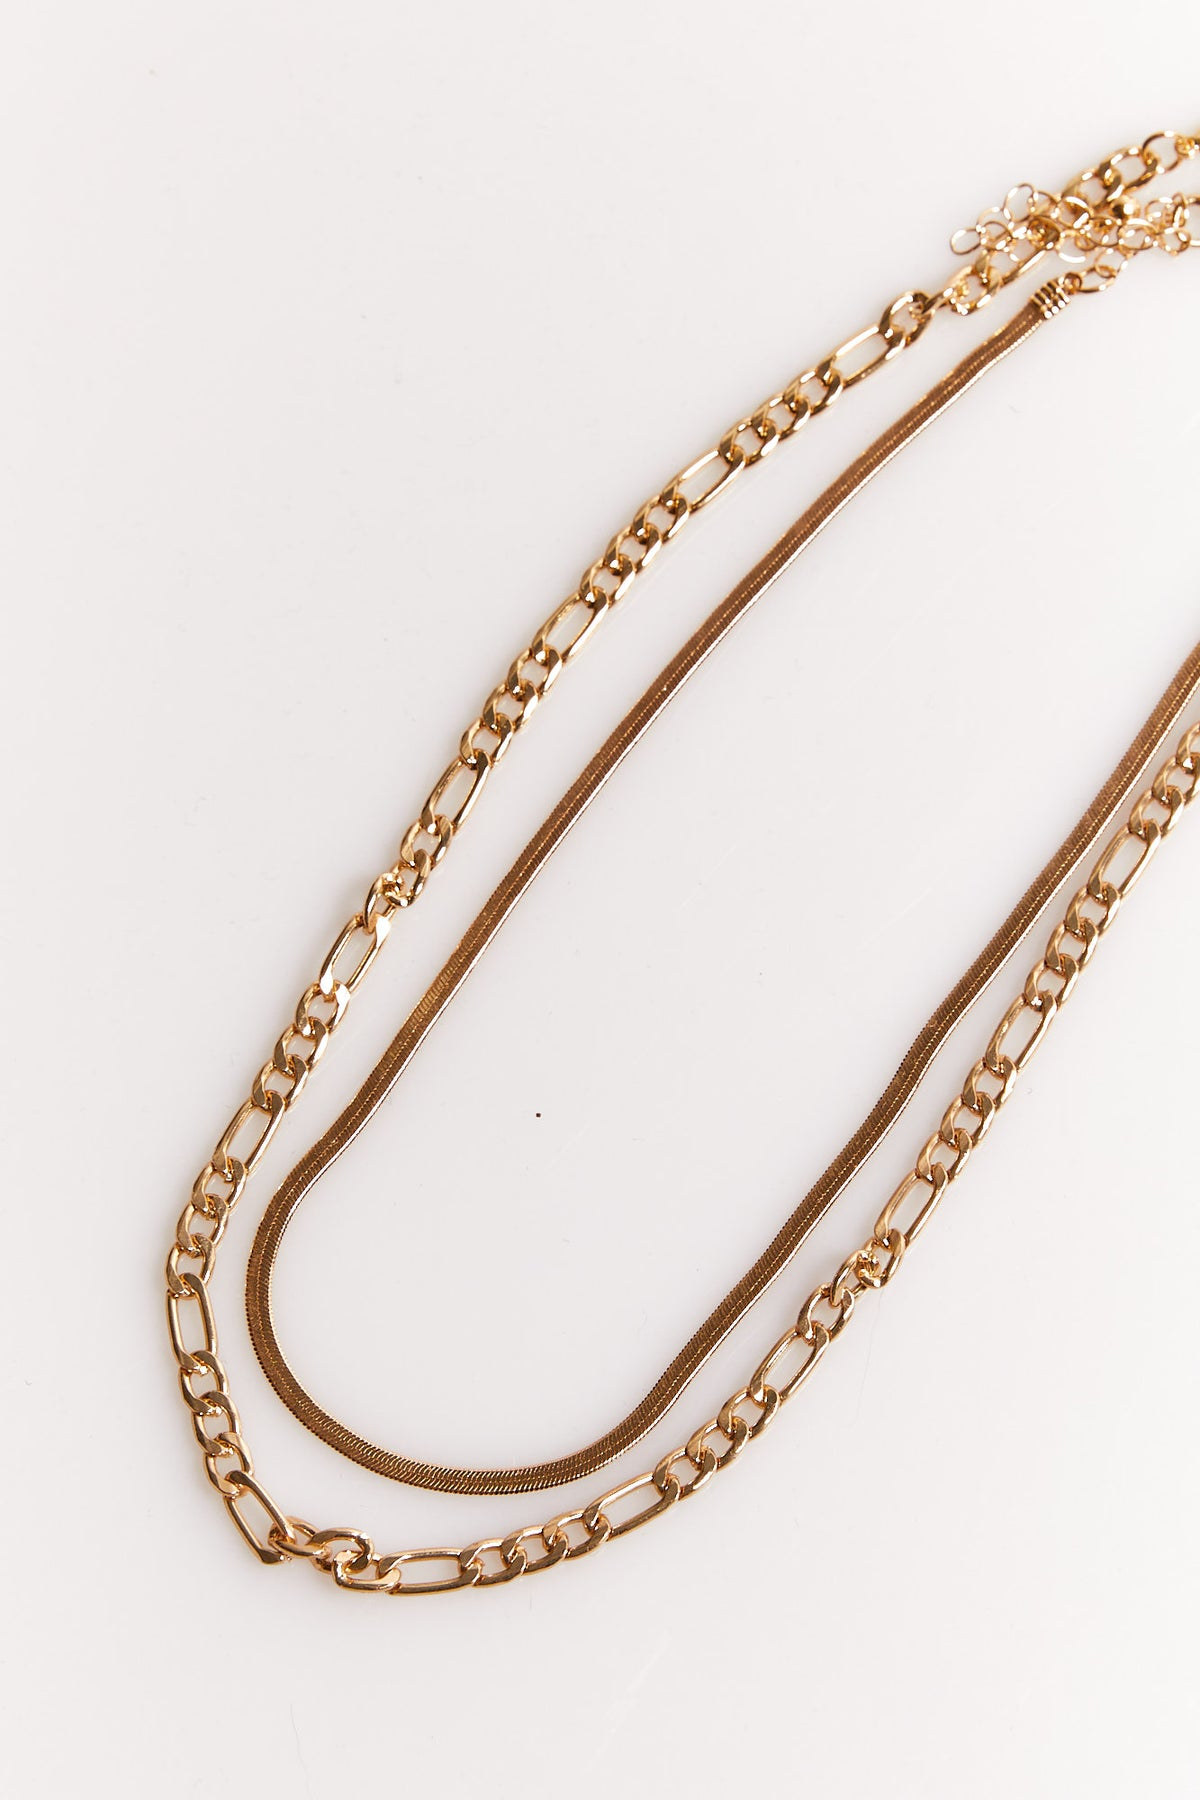 NTH Multi Chain Necklace Gold